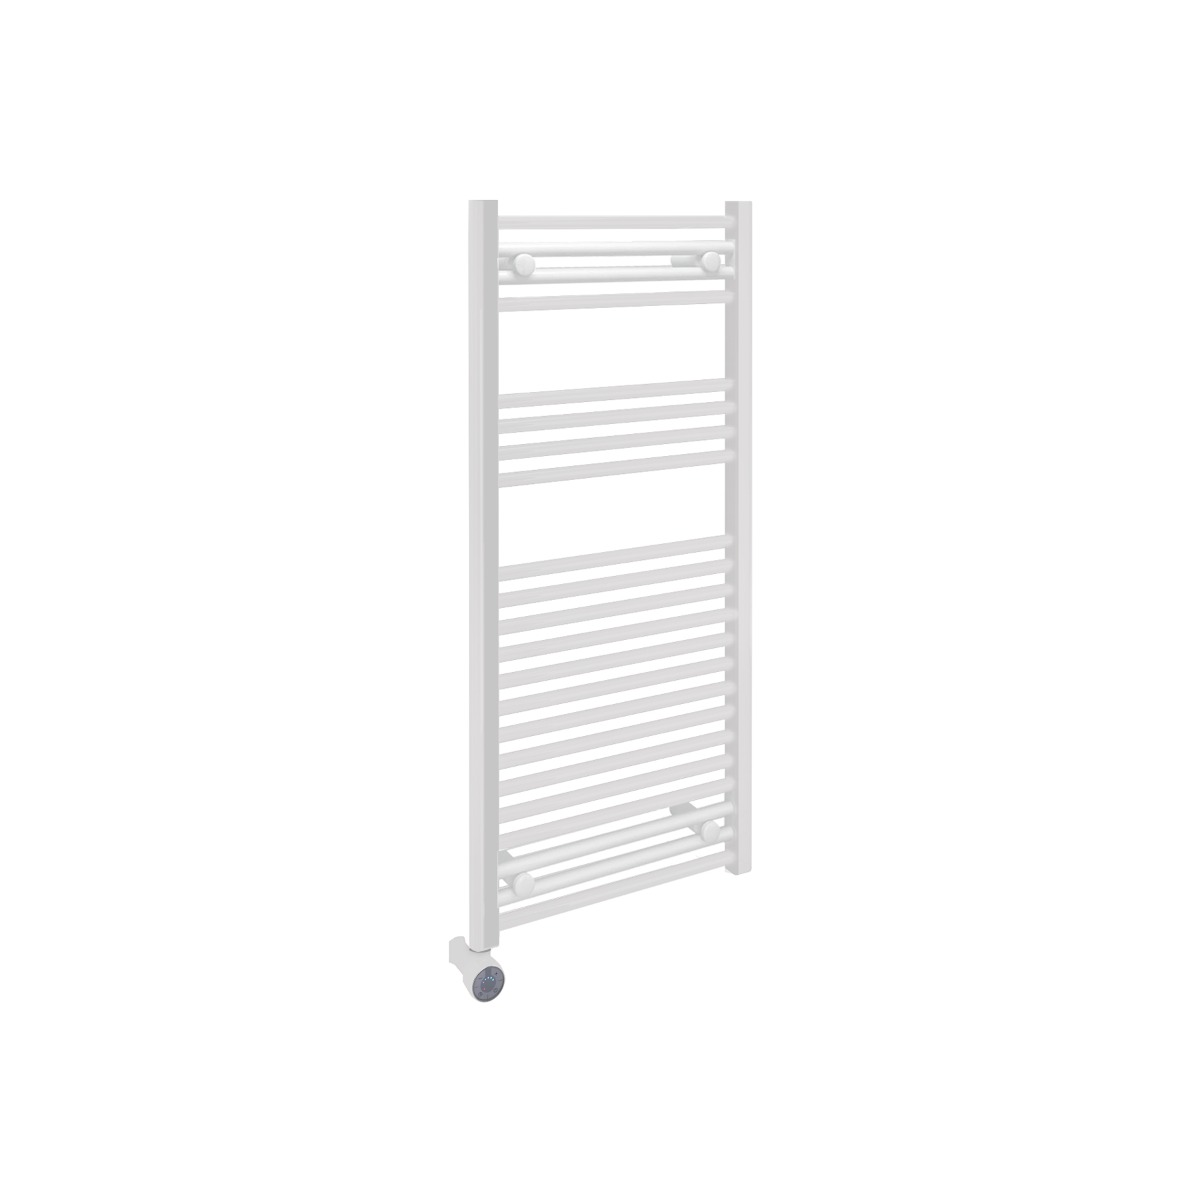 Ecostrad Fina-E Thermostatic Heated Electric Towel Rail